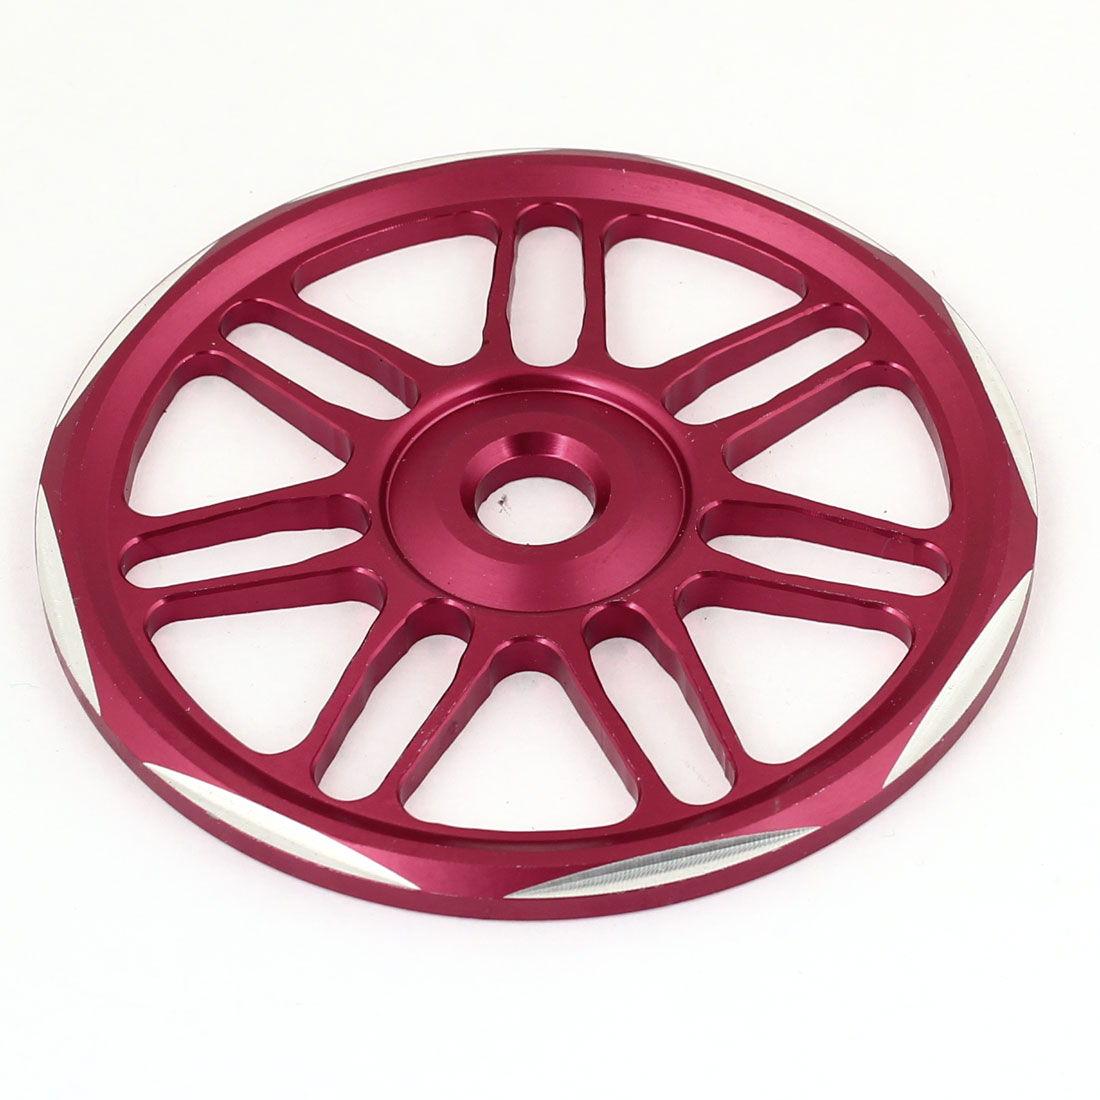 Autobike Motorcycle Metal Red Circle Shaped Wheels Fan Cover